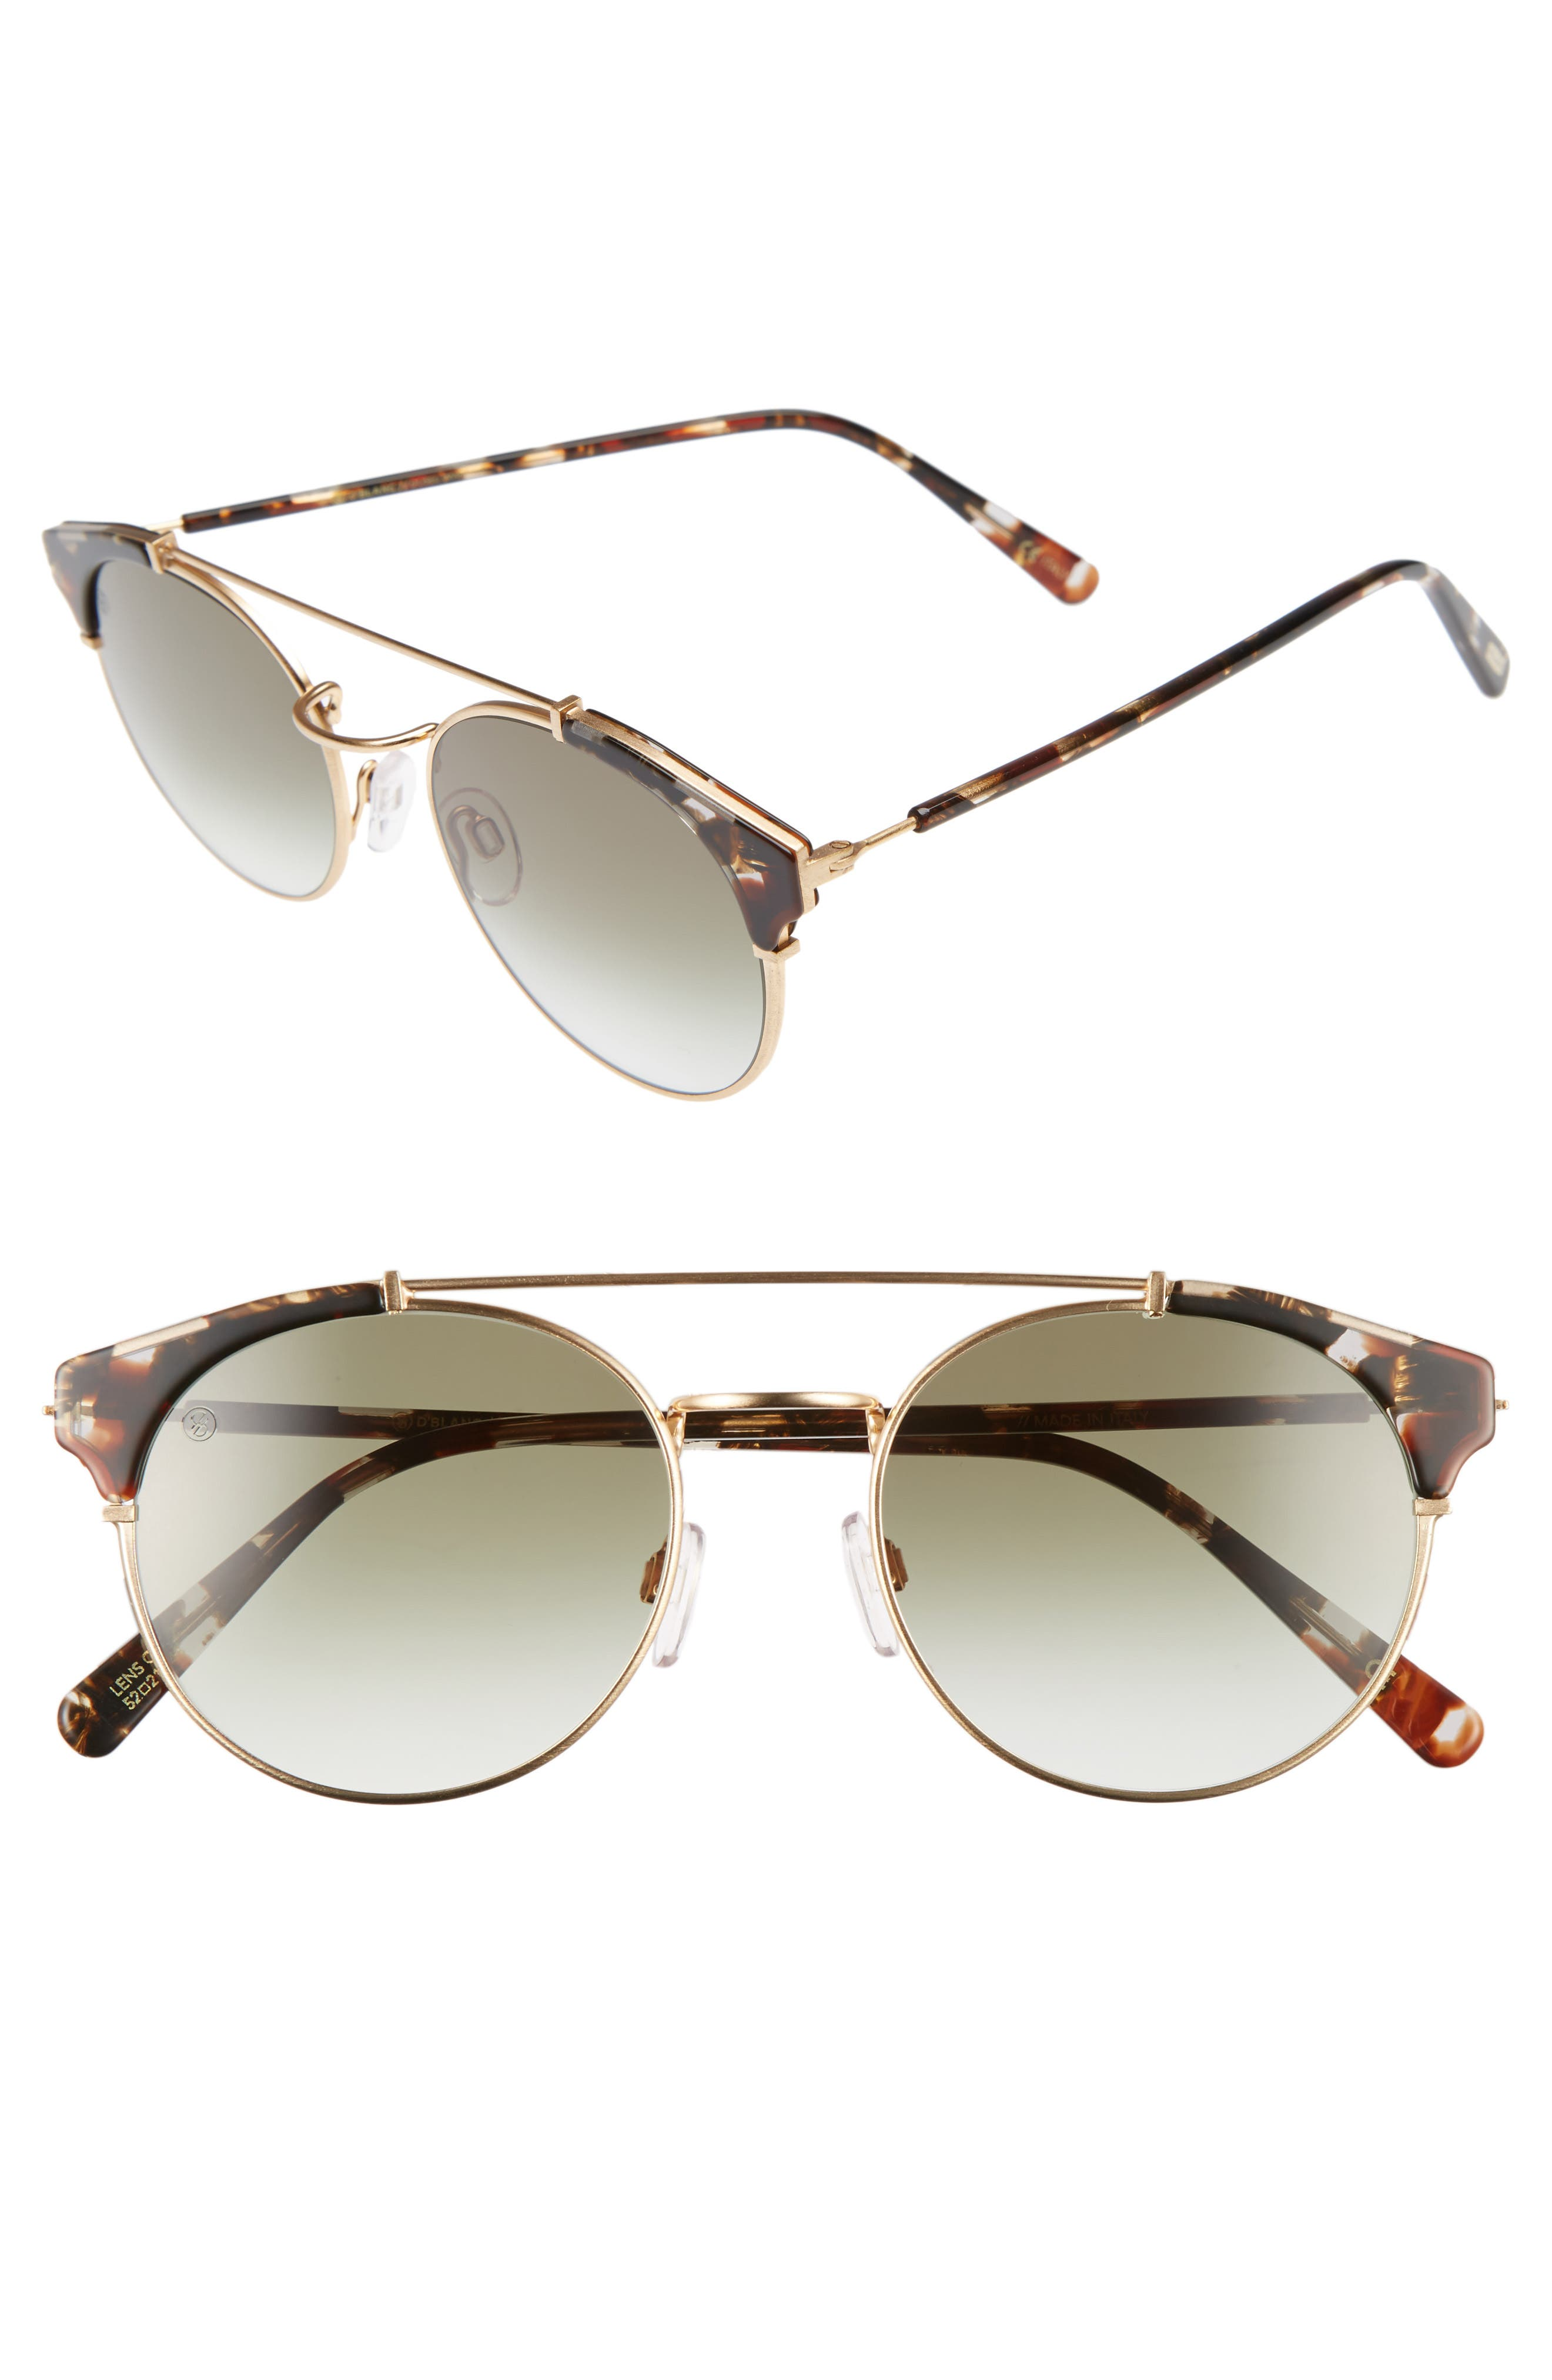 D'BLANC x Amuse Society Dosed Marquis 52mm Gradient Round Aviator Sunglasses,                             Main thumbnail 4, color,